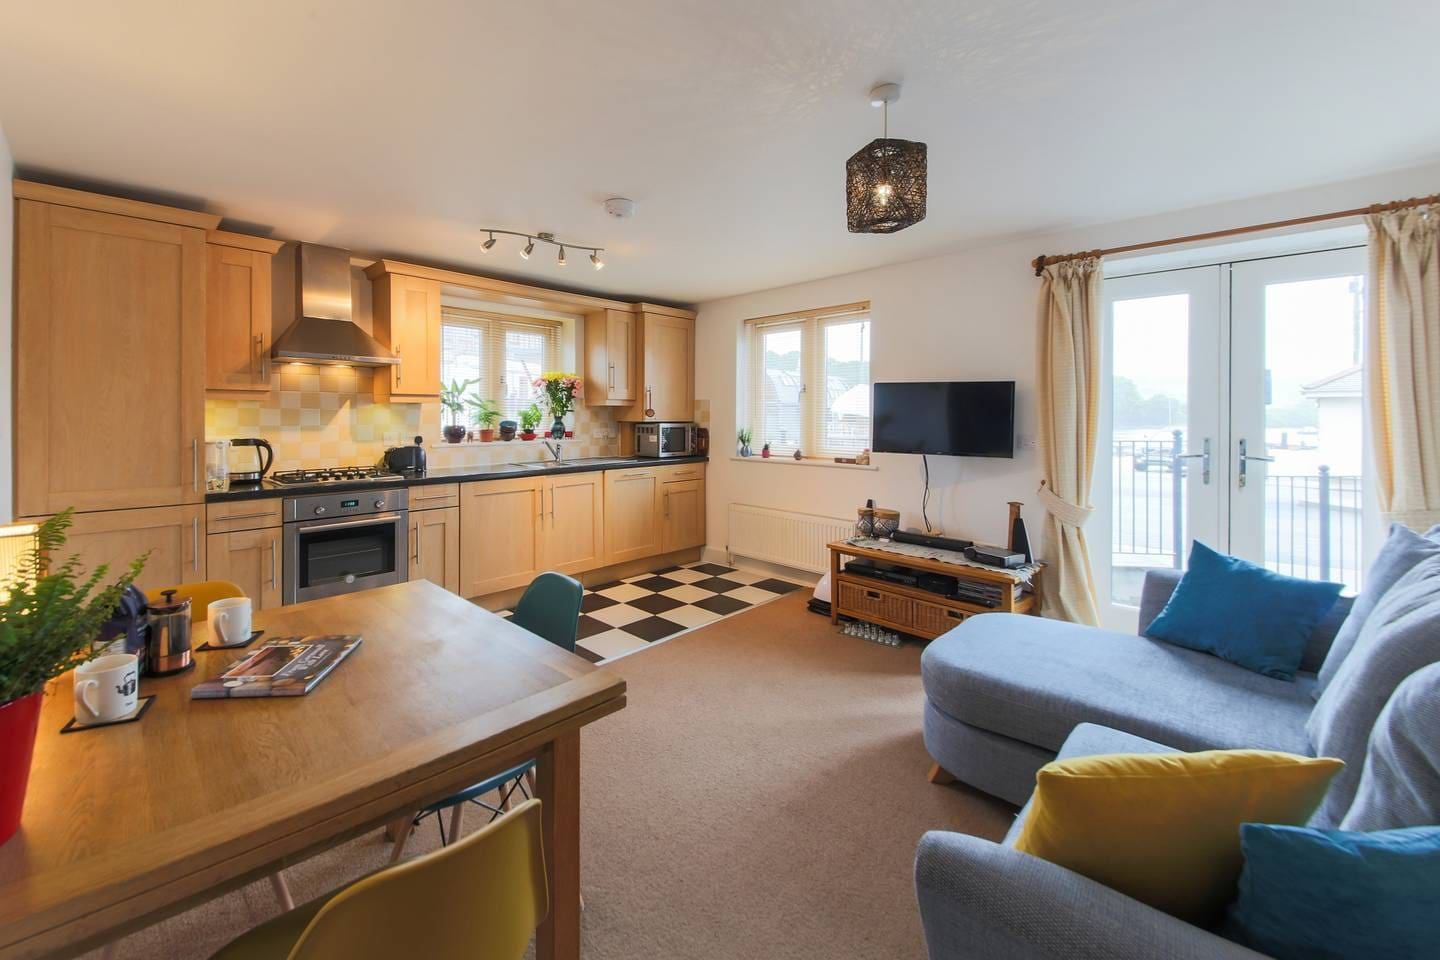 Open plan kitchen/lounge with French doors looking out onto the Carrick Roads.